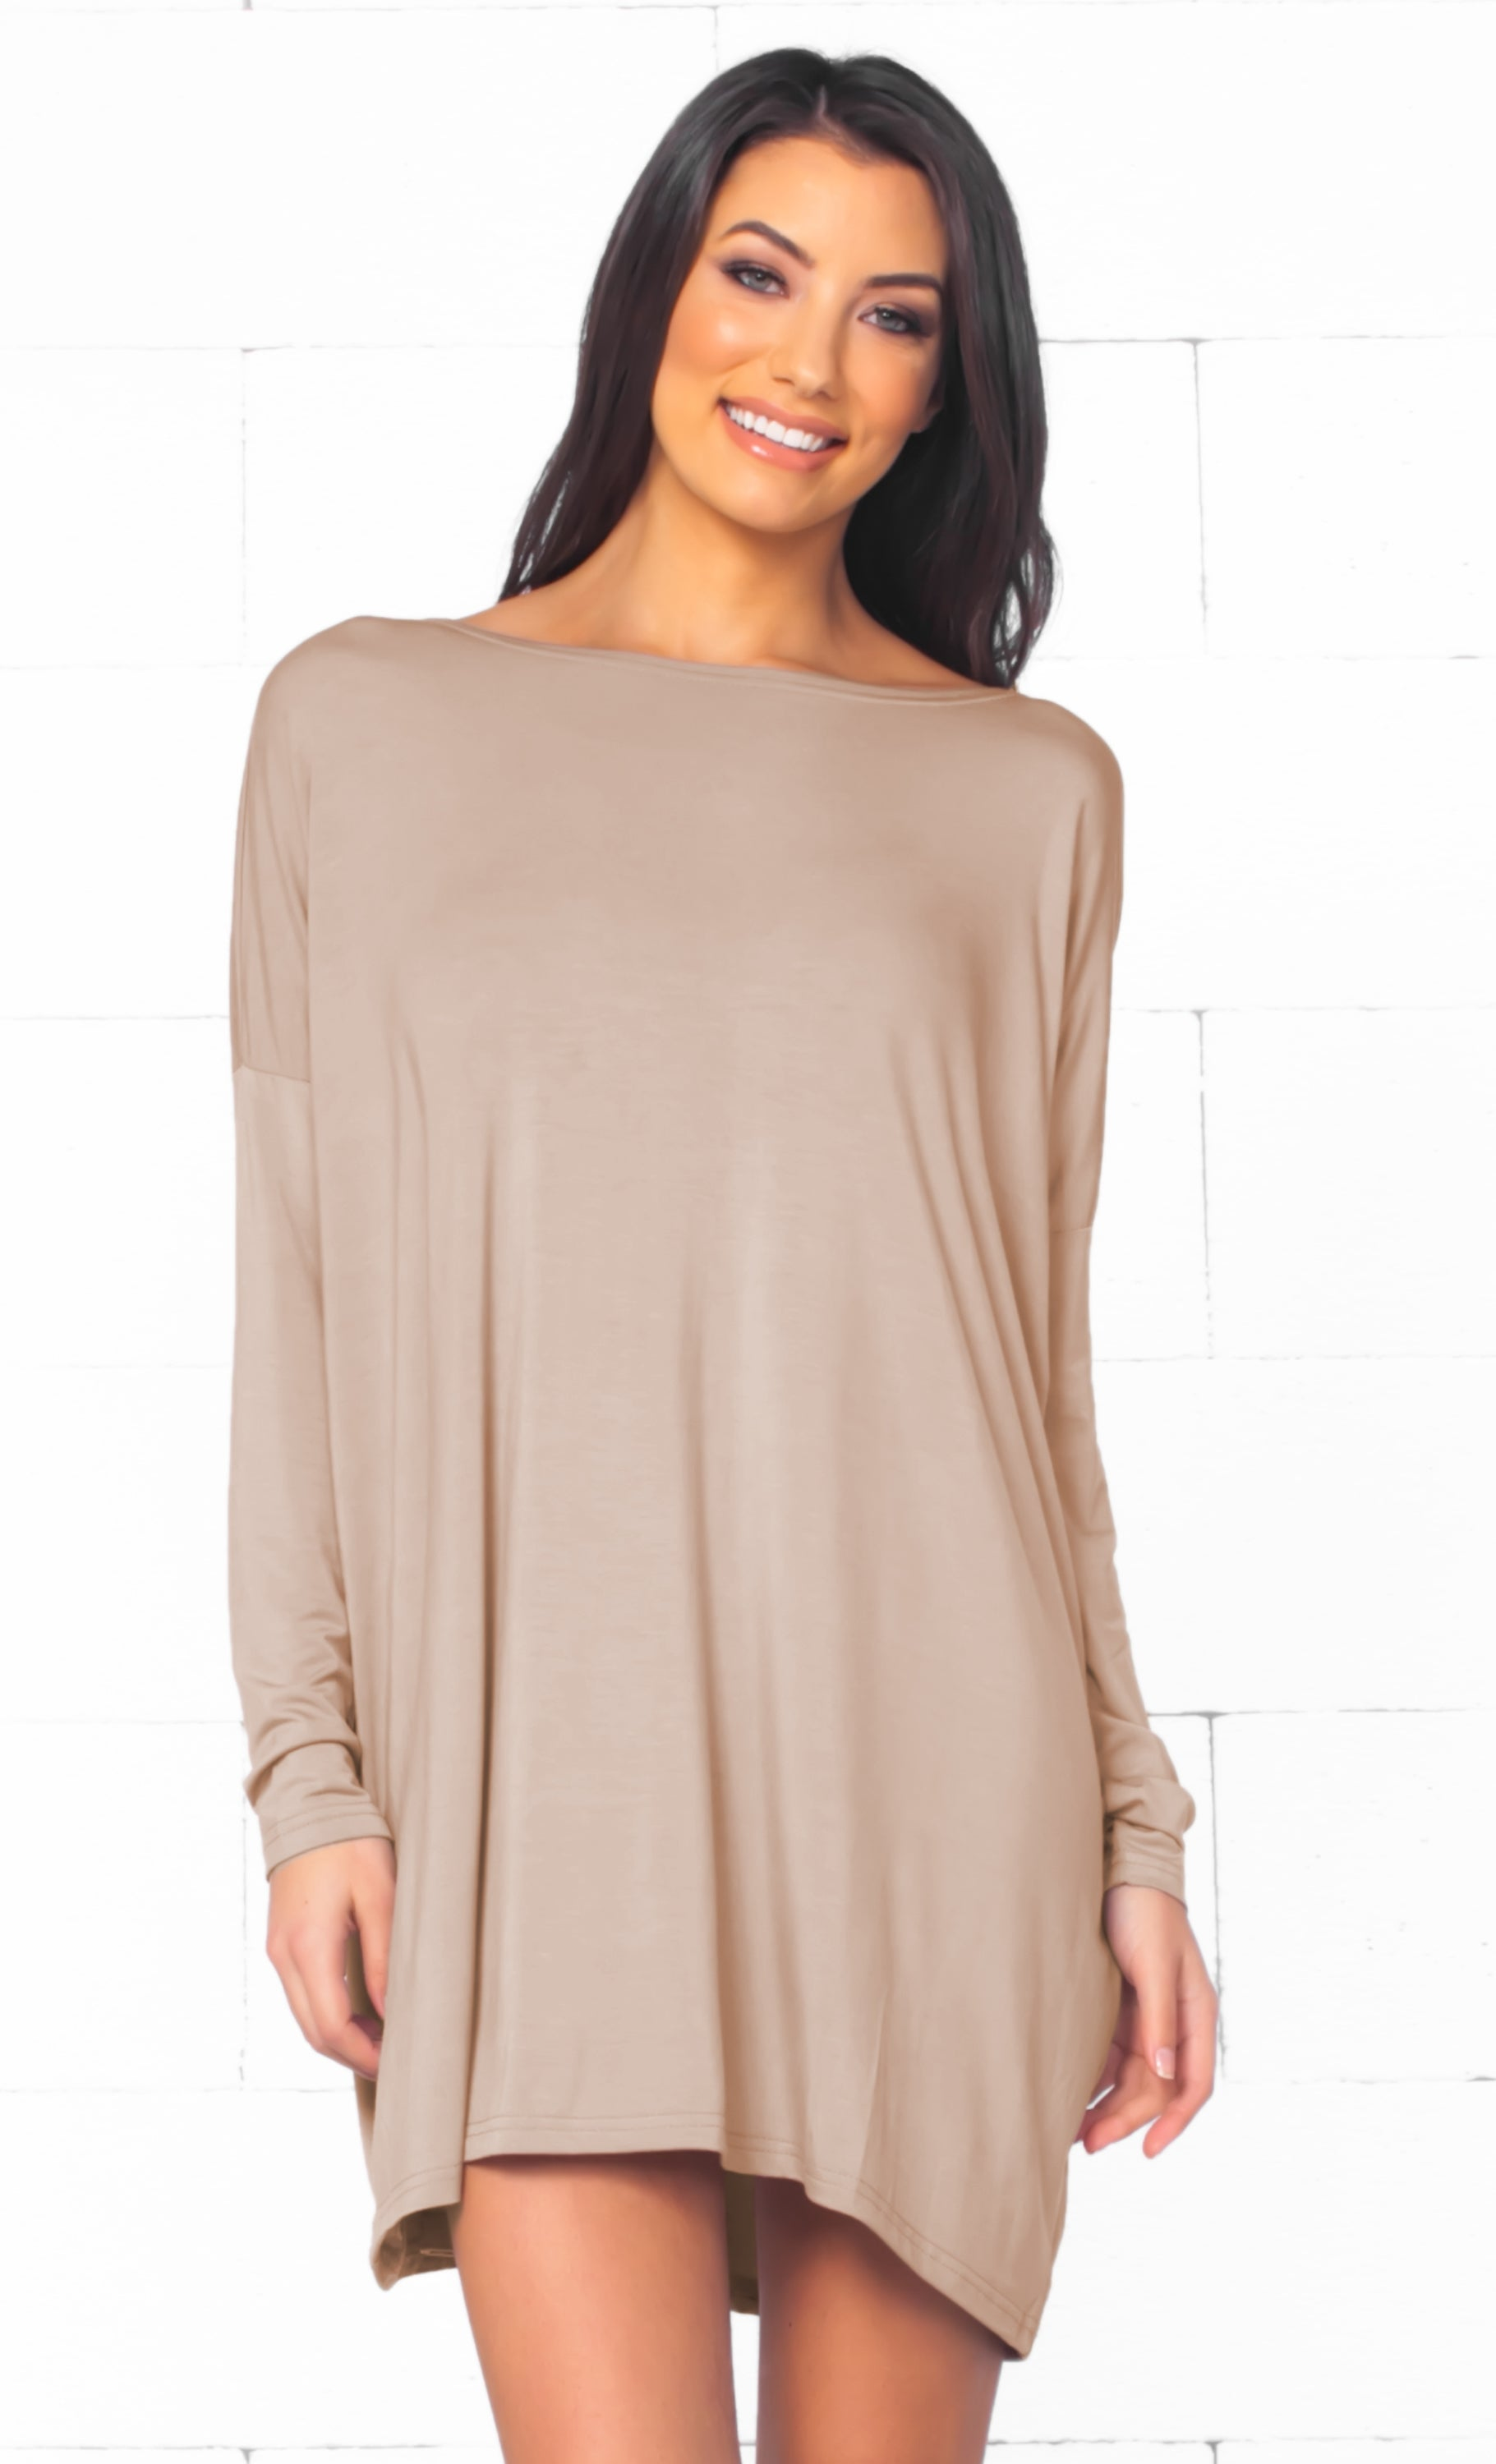 Piko 1988 Light Brown Long Sleeve Scoop Neck Piko Bamboo Oversized Basic Tunic Tee Shirt Mini Dress